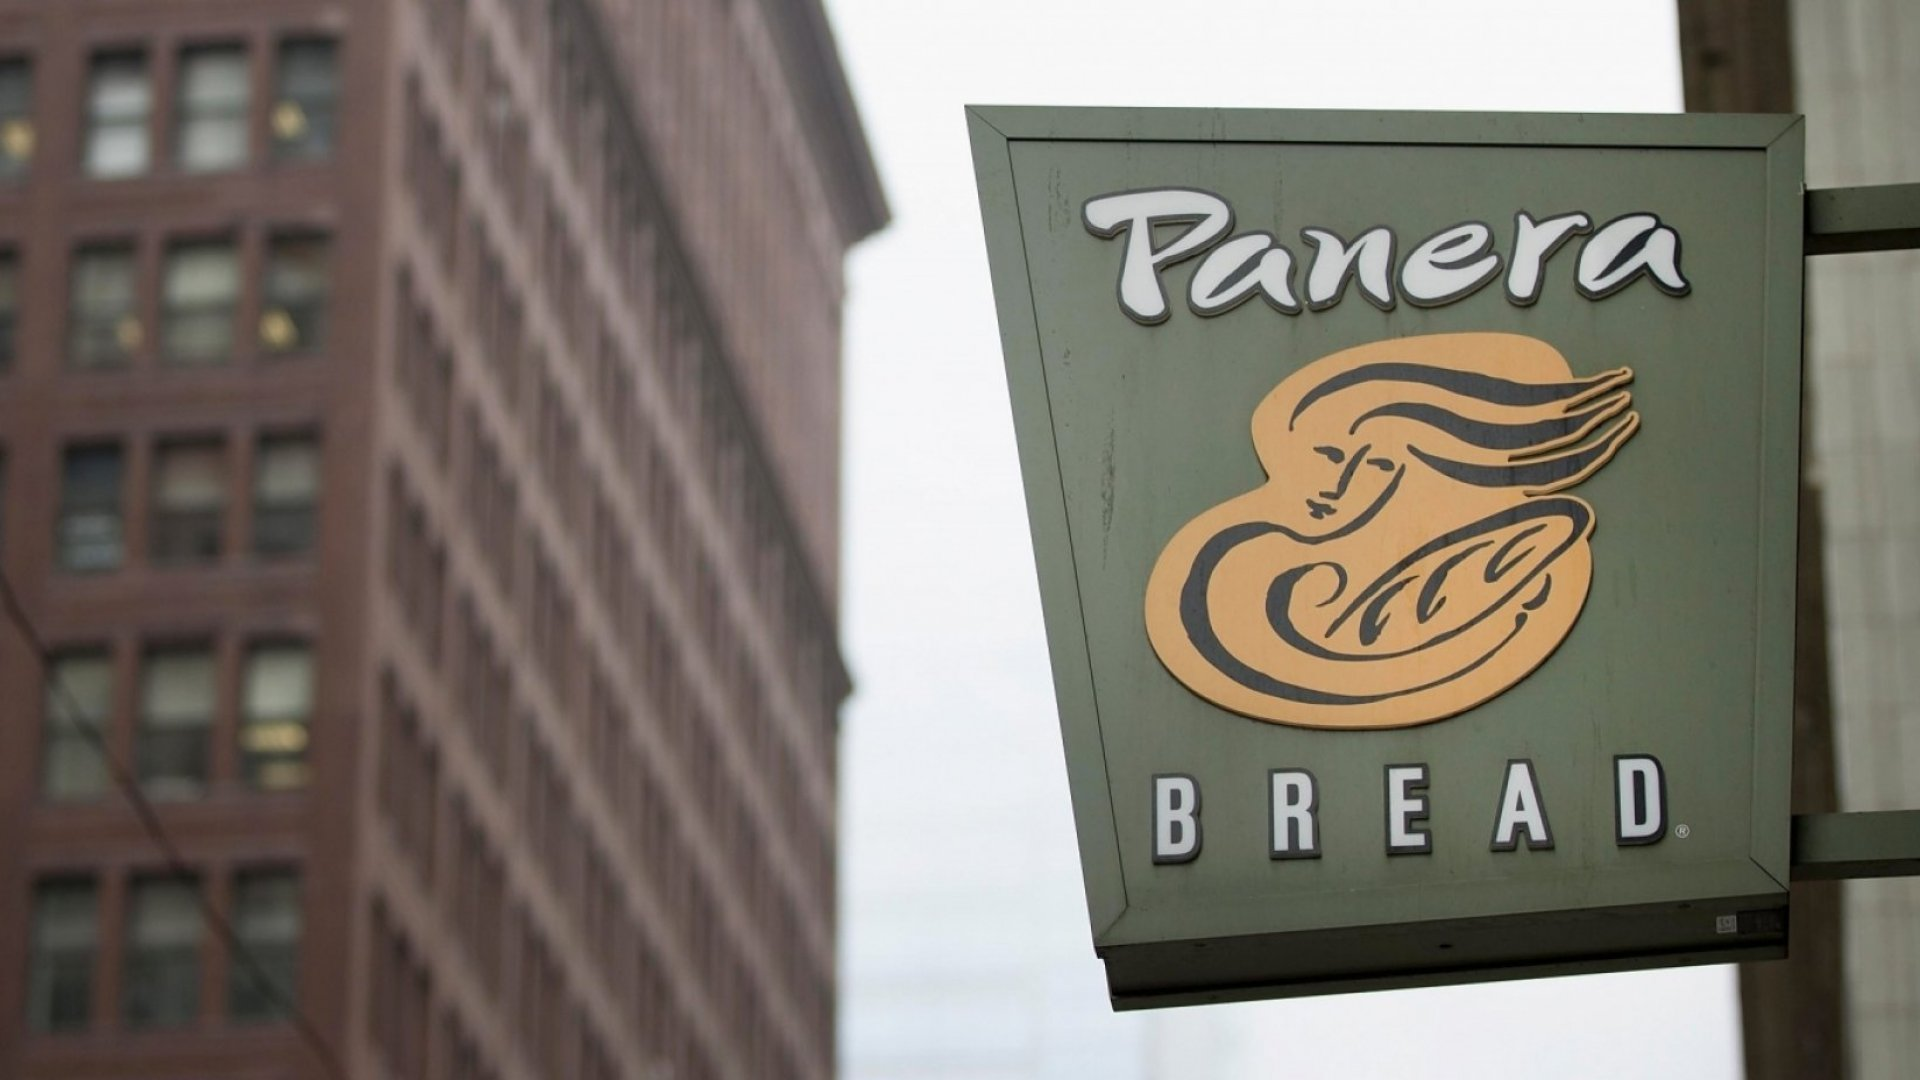 Here's the Brilliant Thing Panera Bread Did So You'll Think Their Competitors' Food Is Gross